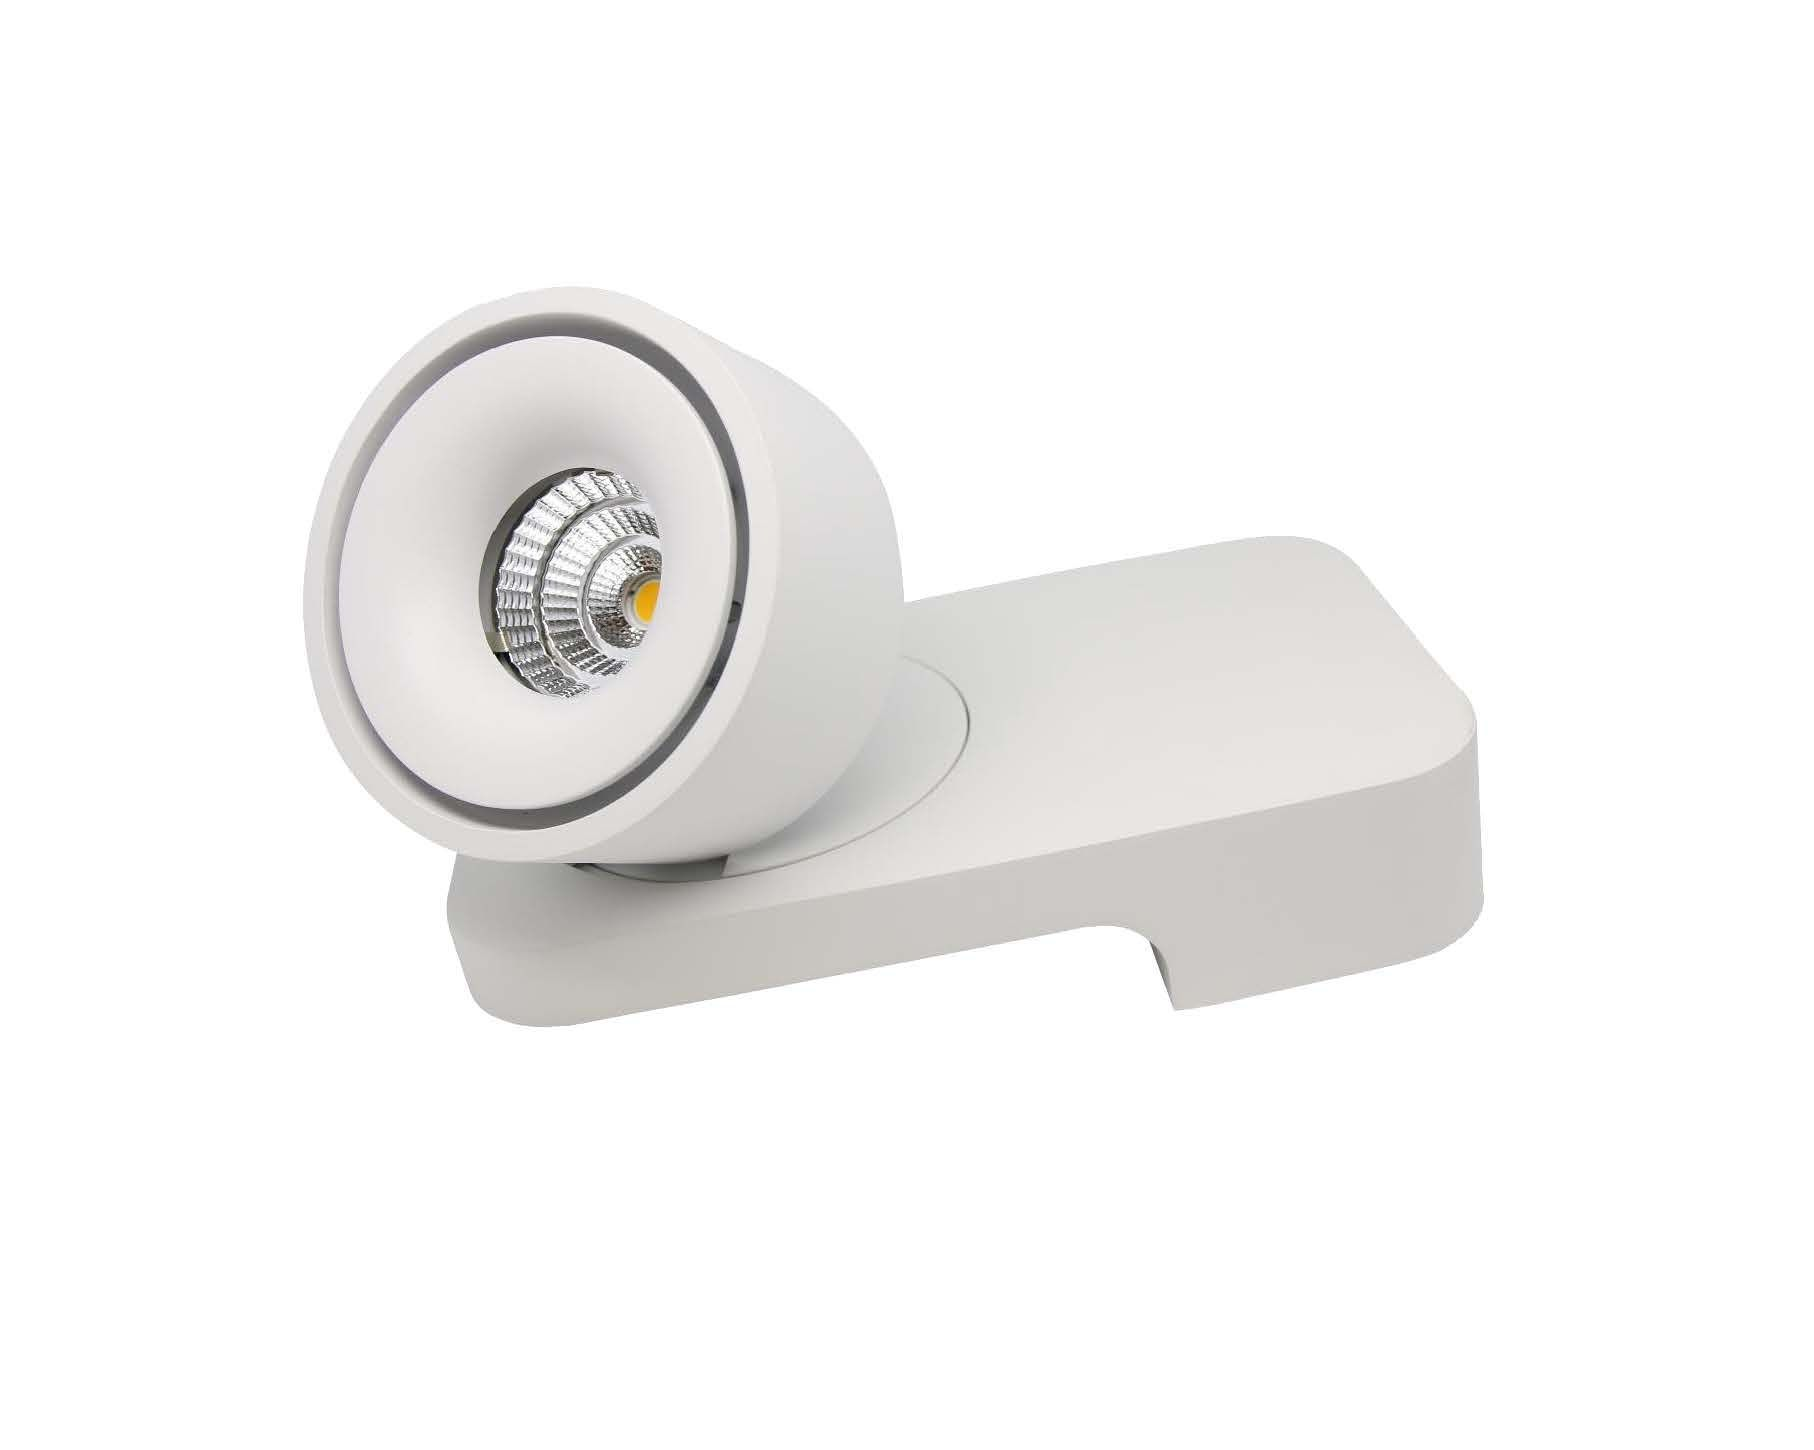 SMJT surface mount ceiling or wall light